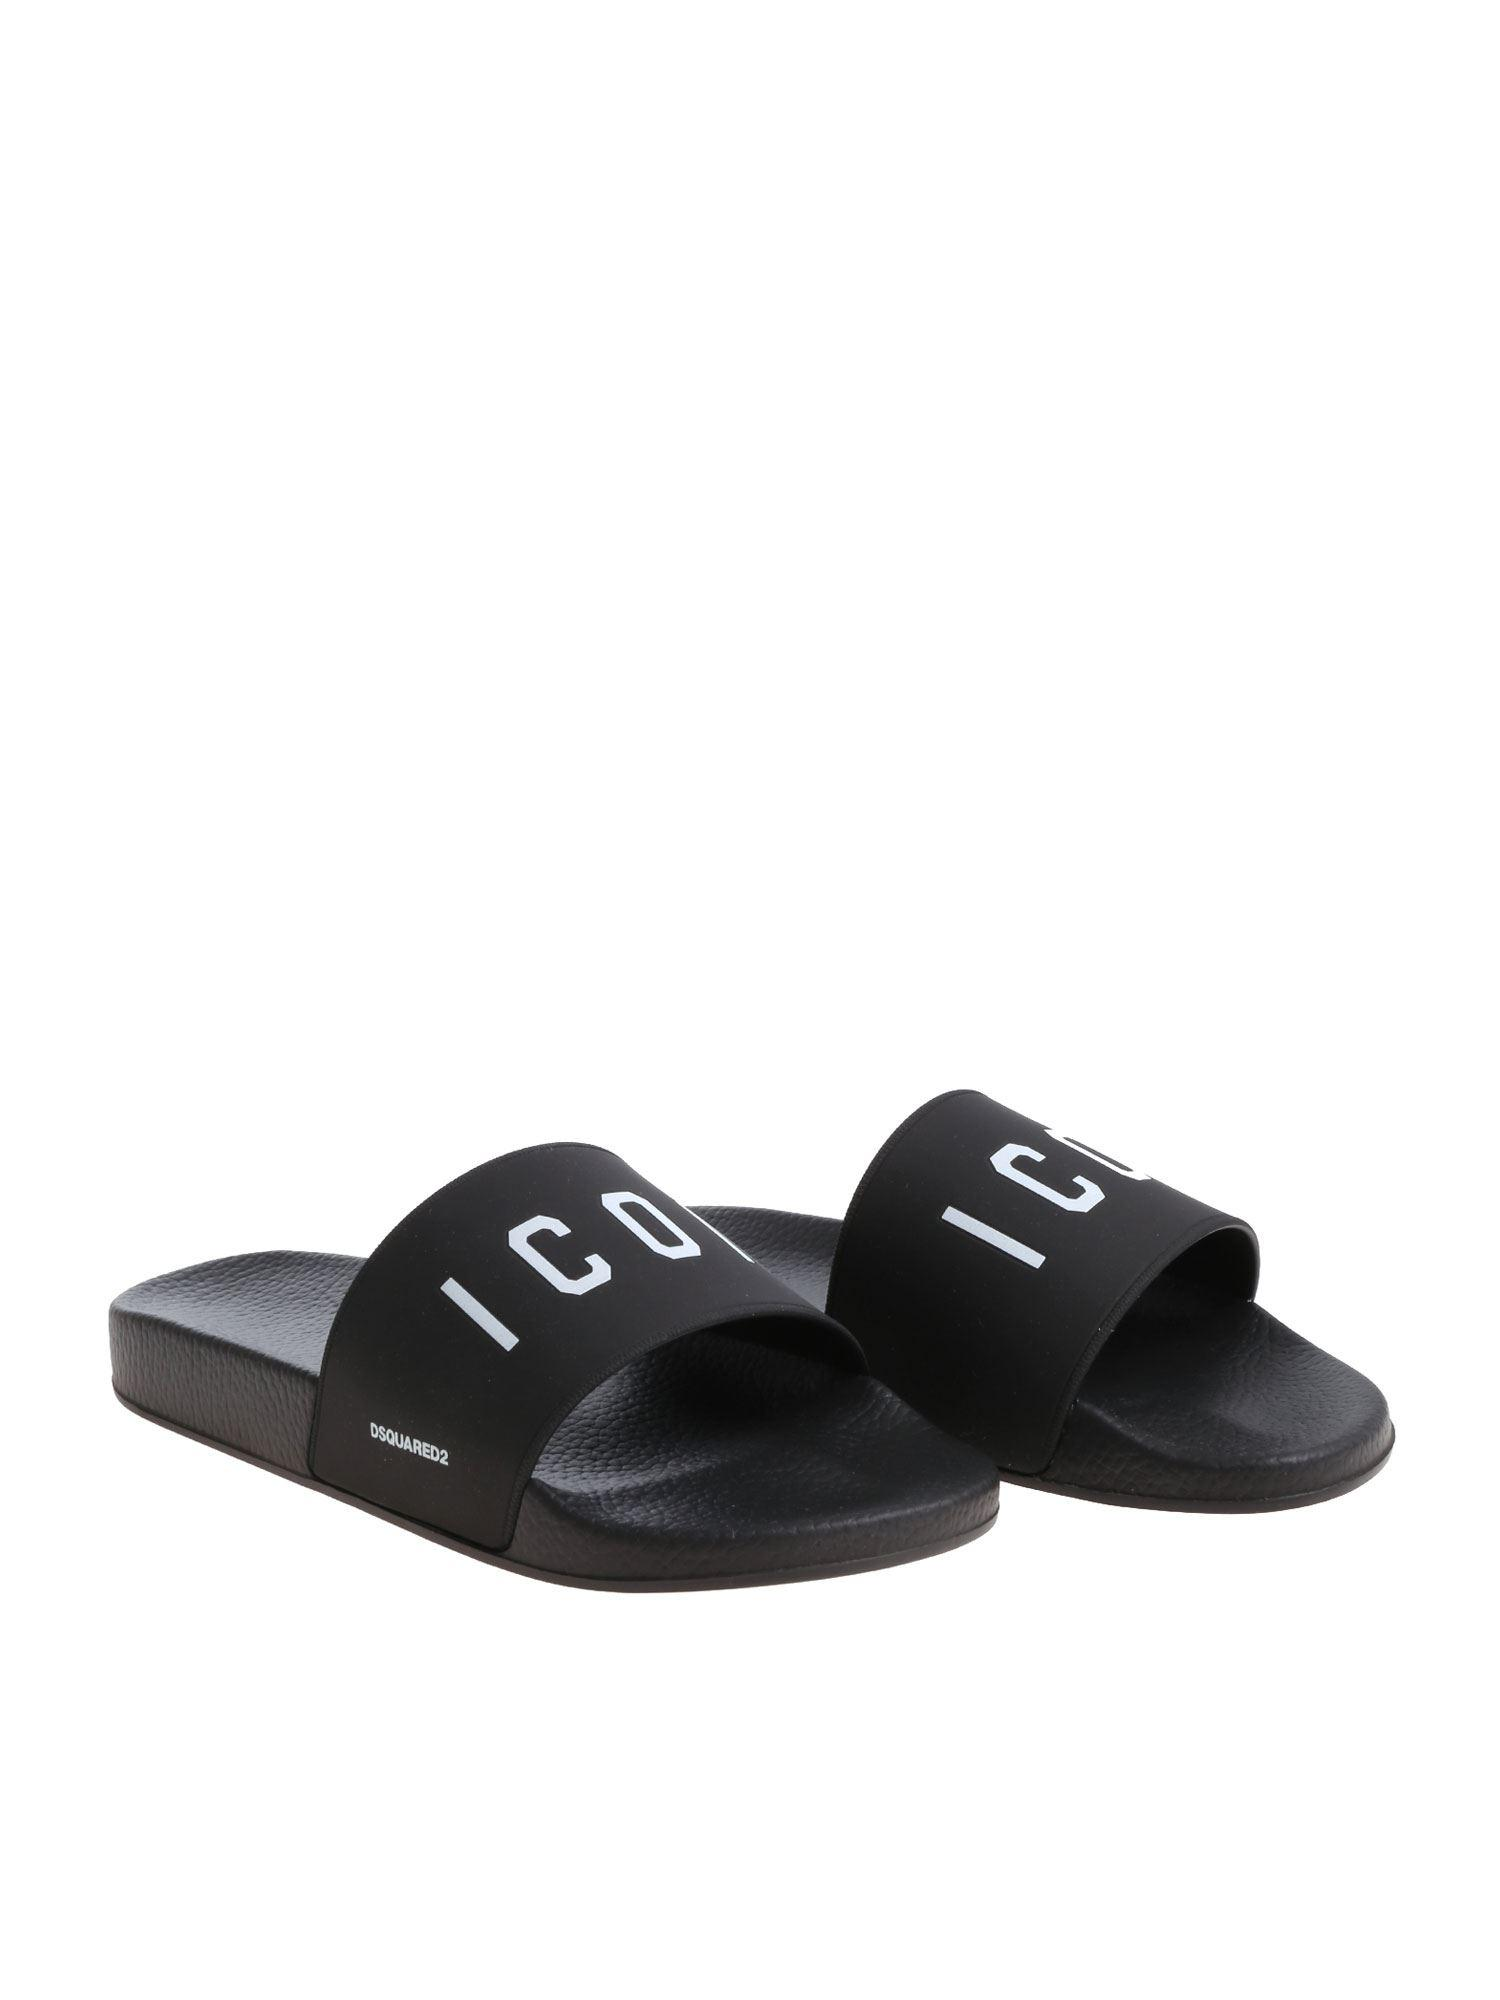 f264c4db3 DSquared² Black Slippers With White Icon Print in Black for Men - Save 35%  - Lyst